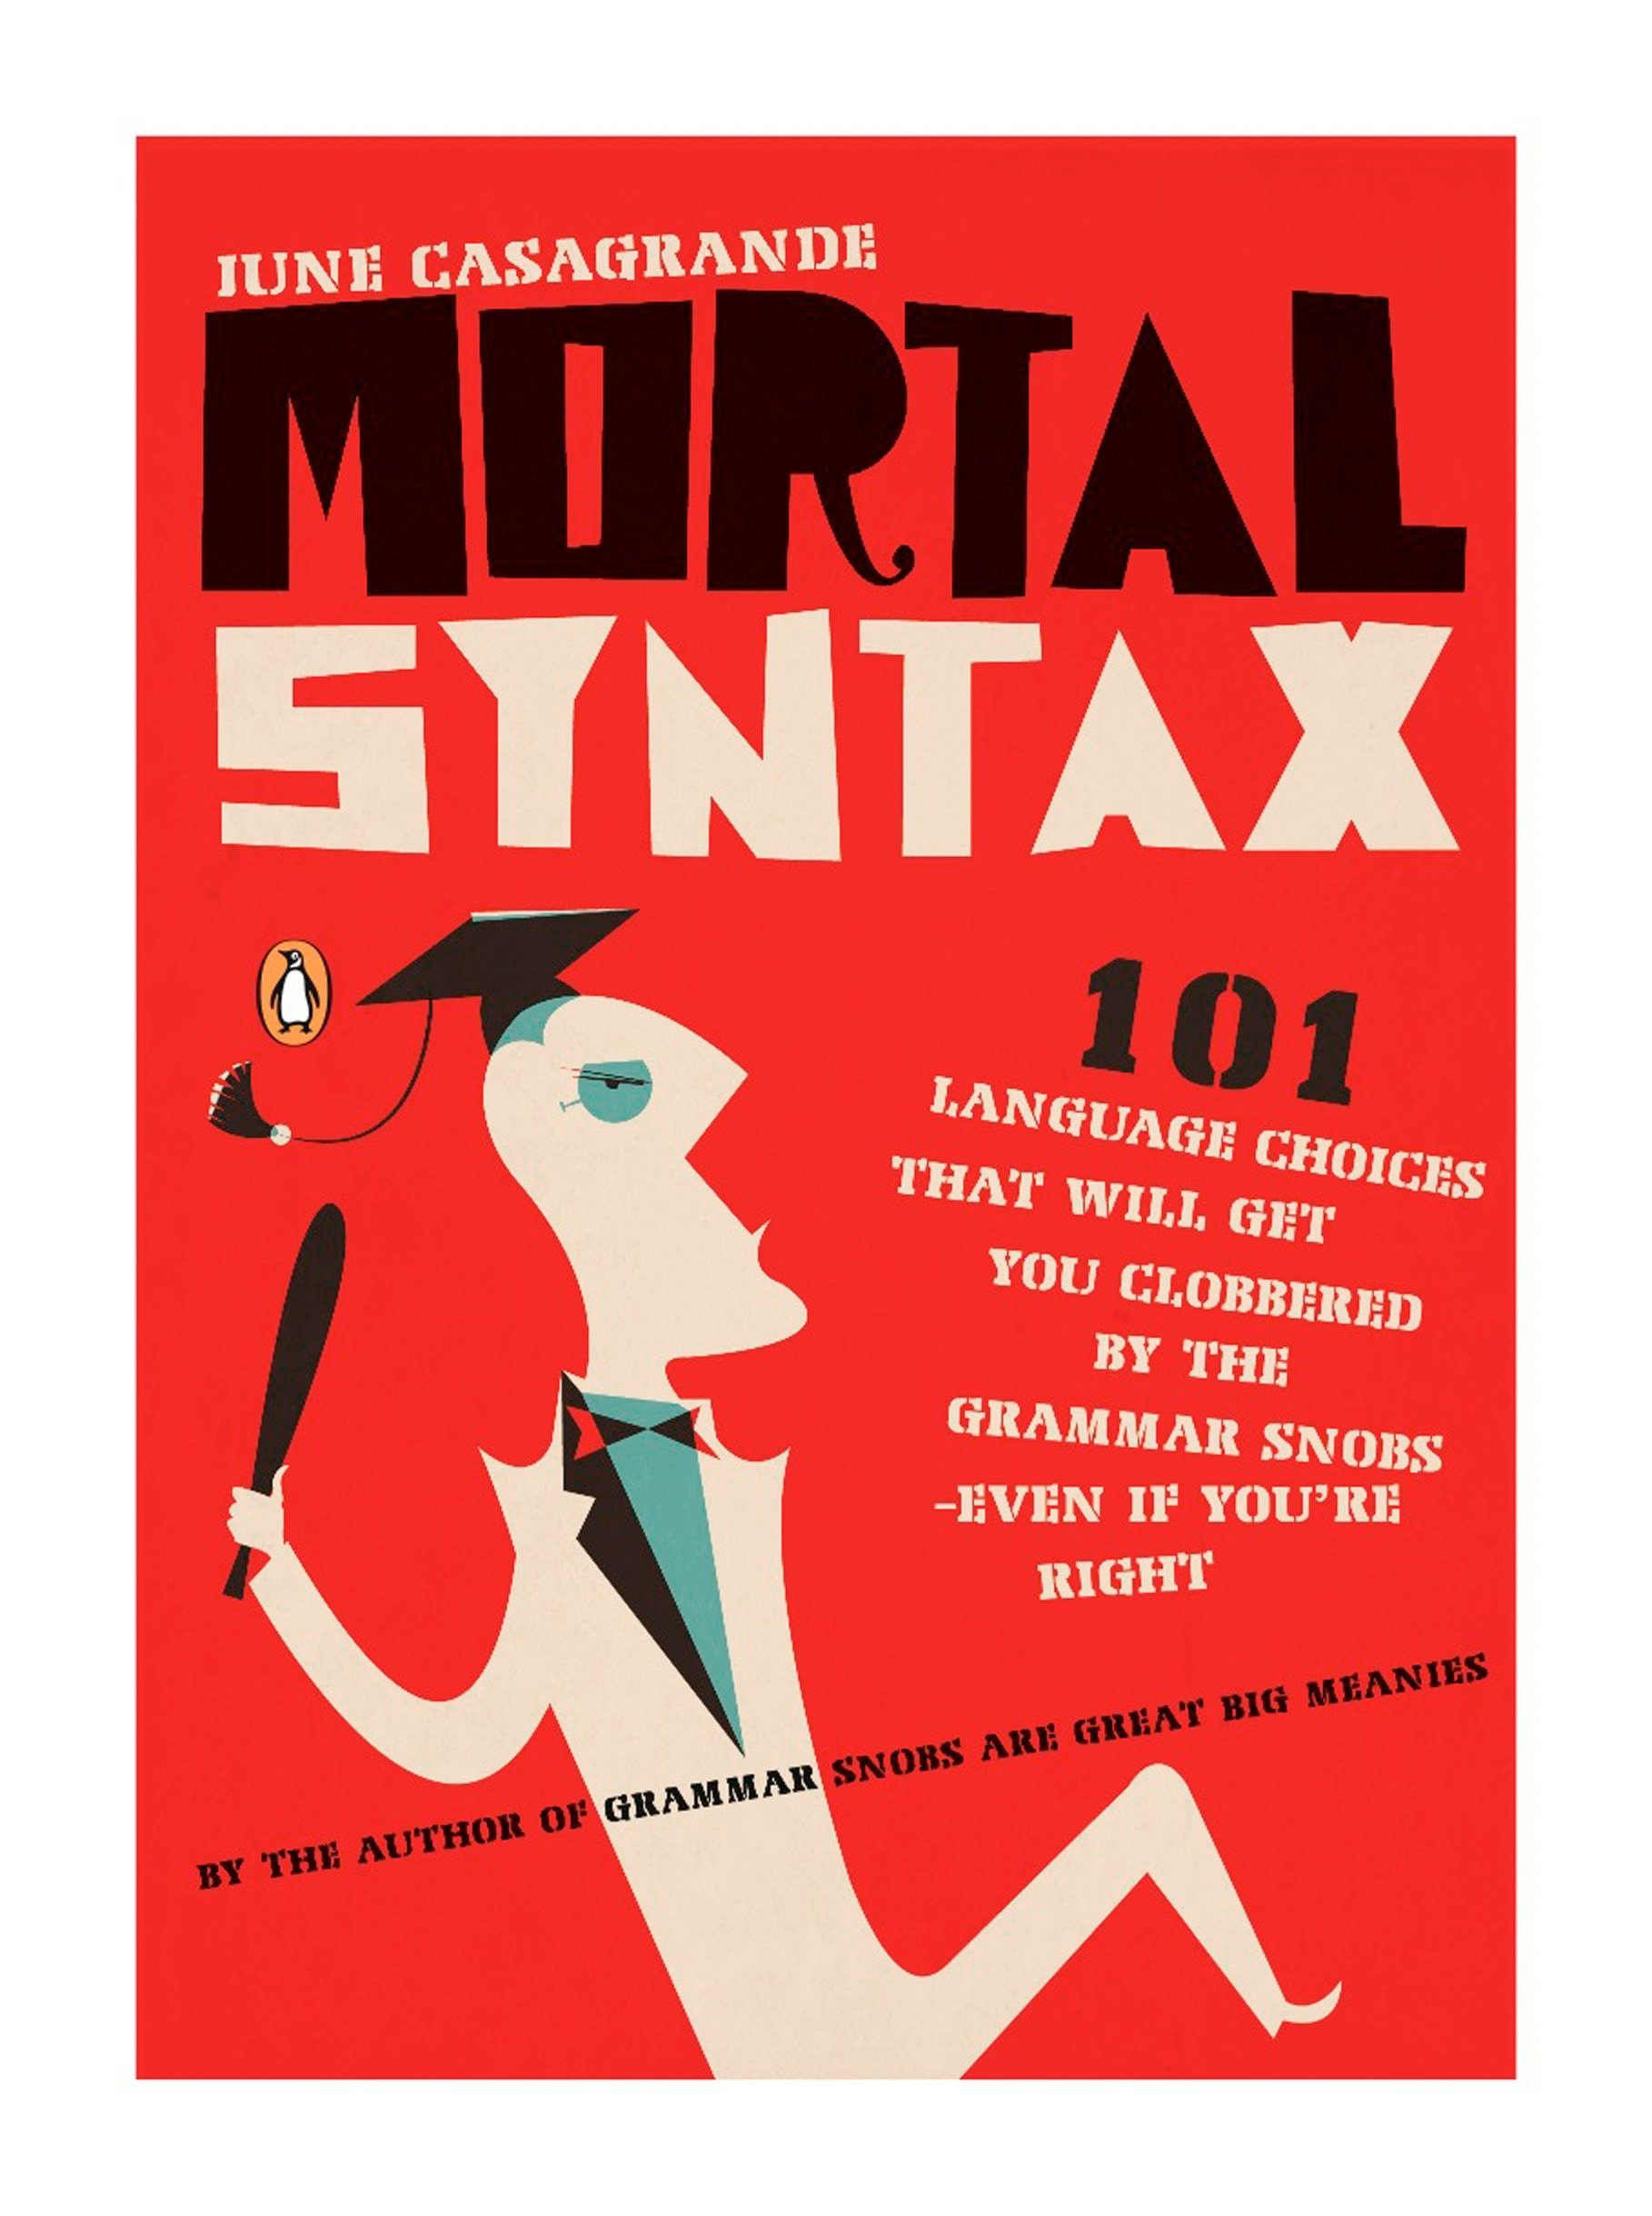 Mortal Syntax: 101 Language Choices That Will Get You Clobbered by the Grammar Snobs--Even If Y ou're Right by Penguin Books